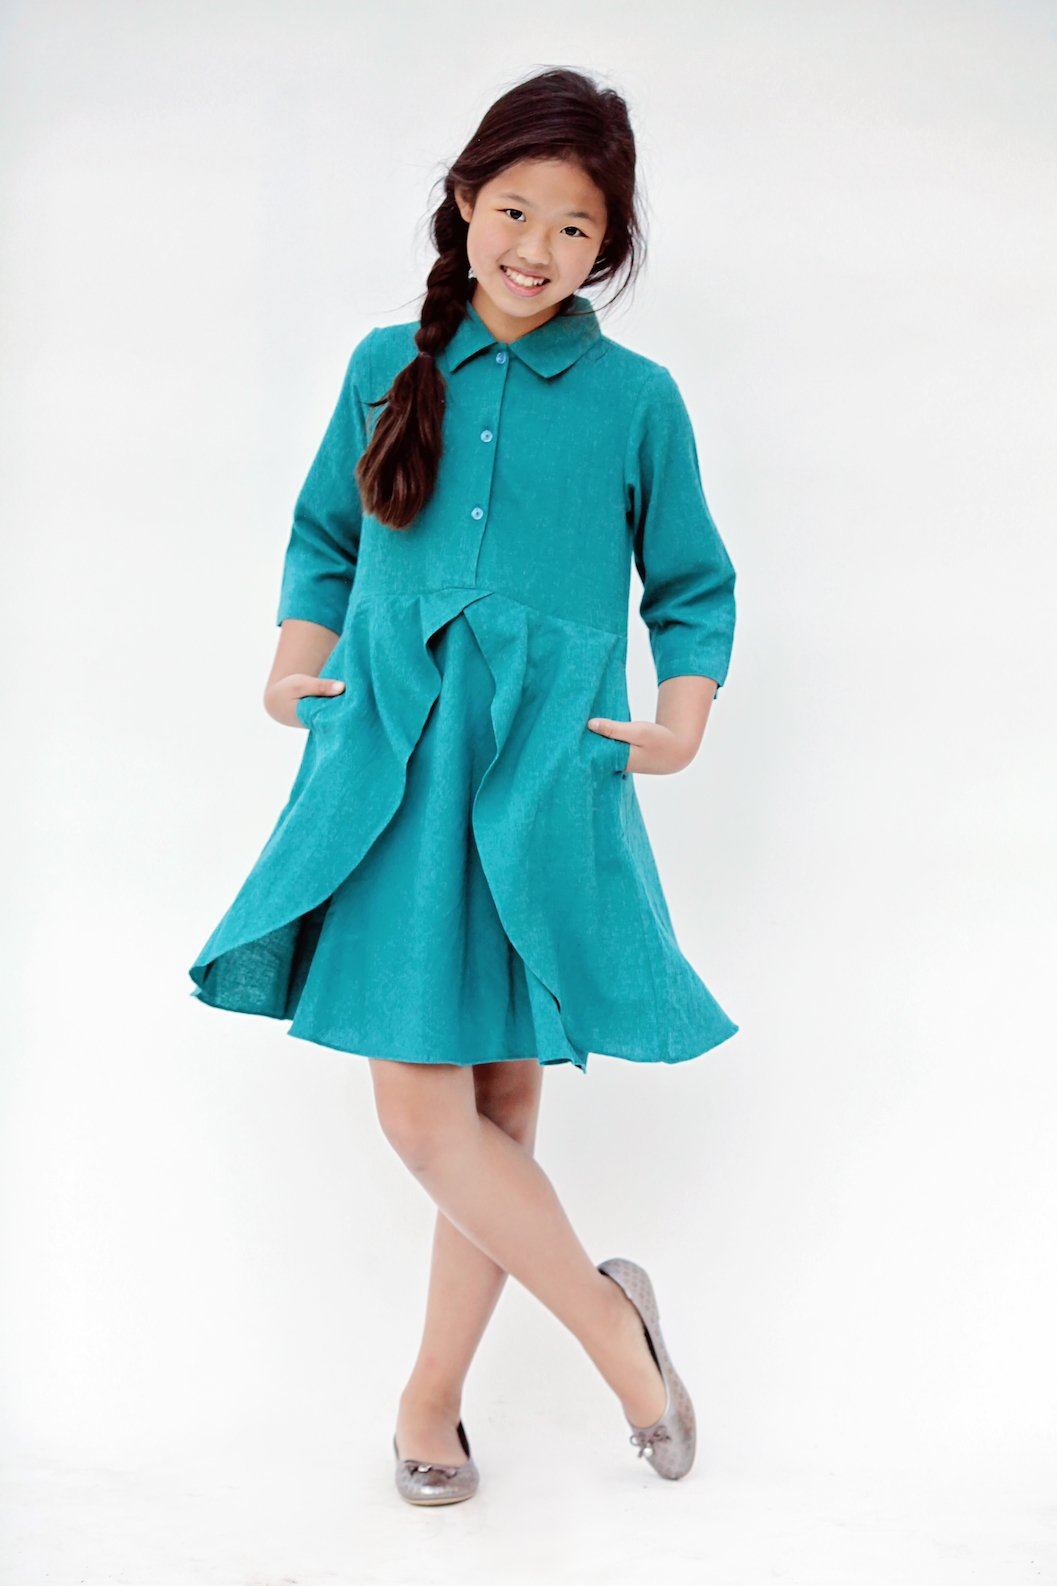 Teal Flounce Dress with Pockets - Kids Clothing, Dress - Girls Dress, Yo Baby Online - Yo Baby